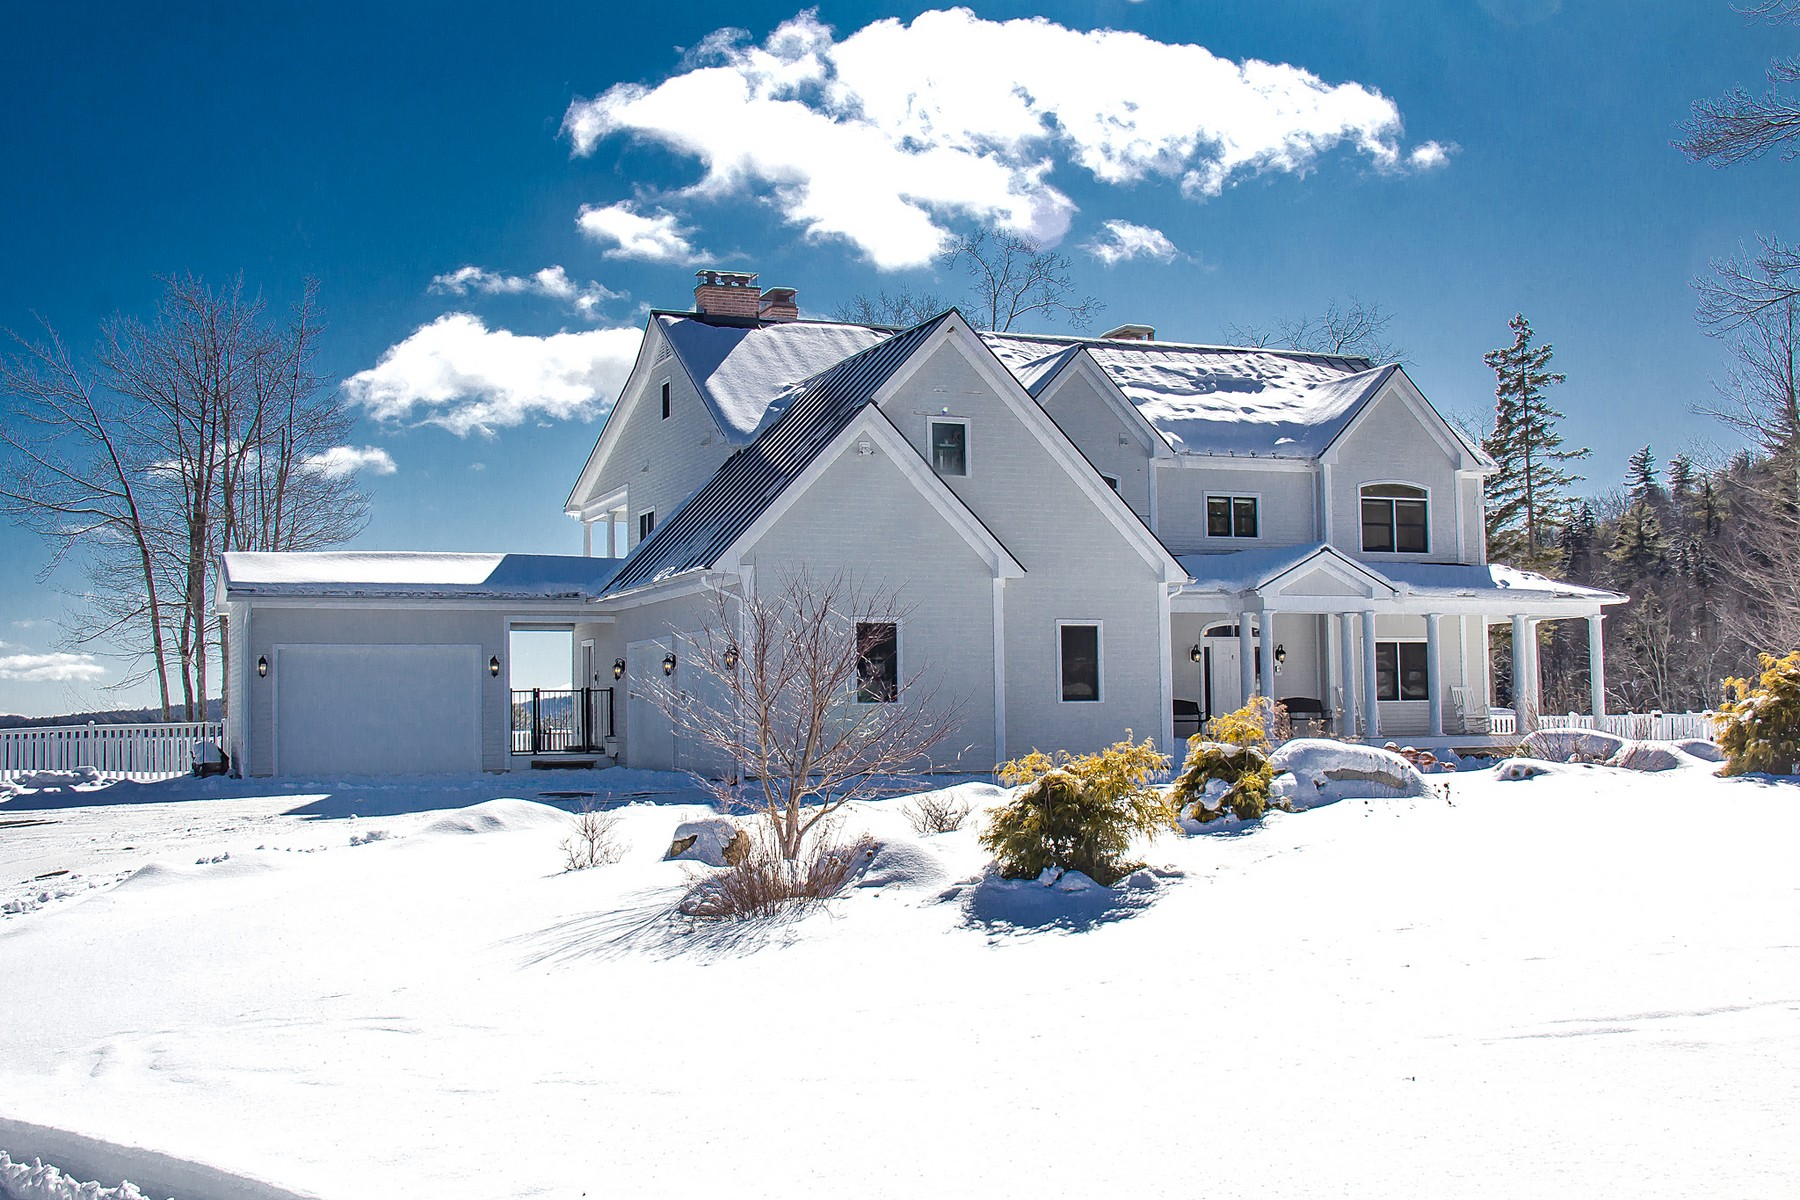 Single Family Homes for Sale at Private Country Estate with 1470 Acres 400 Timberbrook Ln Townshend, Vermont 05353 United States